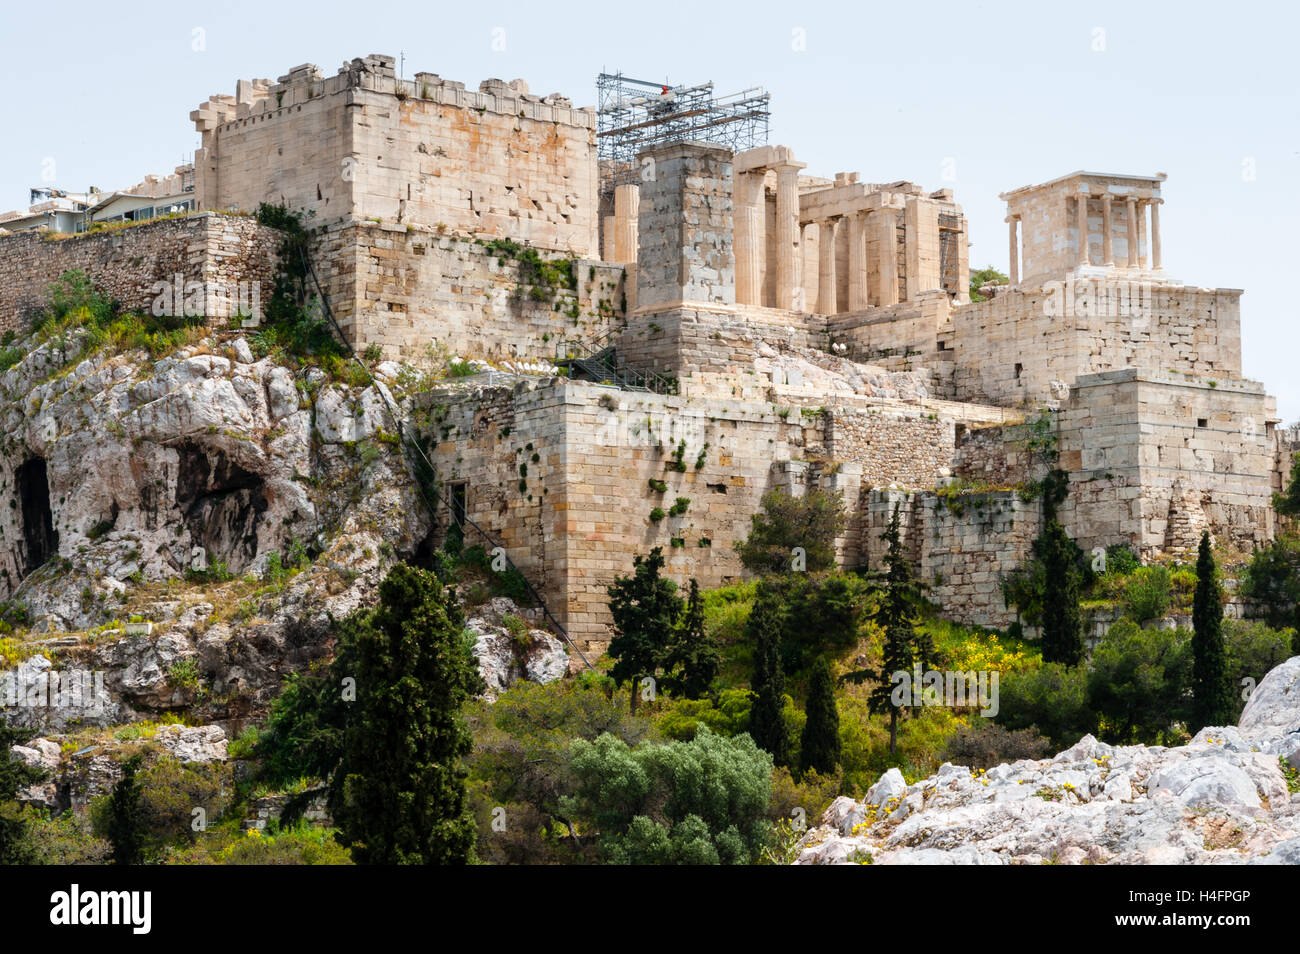 Athens, Greece. View of Acropolis from Areopagus with the Propylaea. Stock Photo